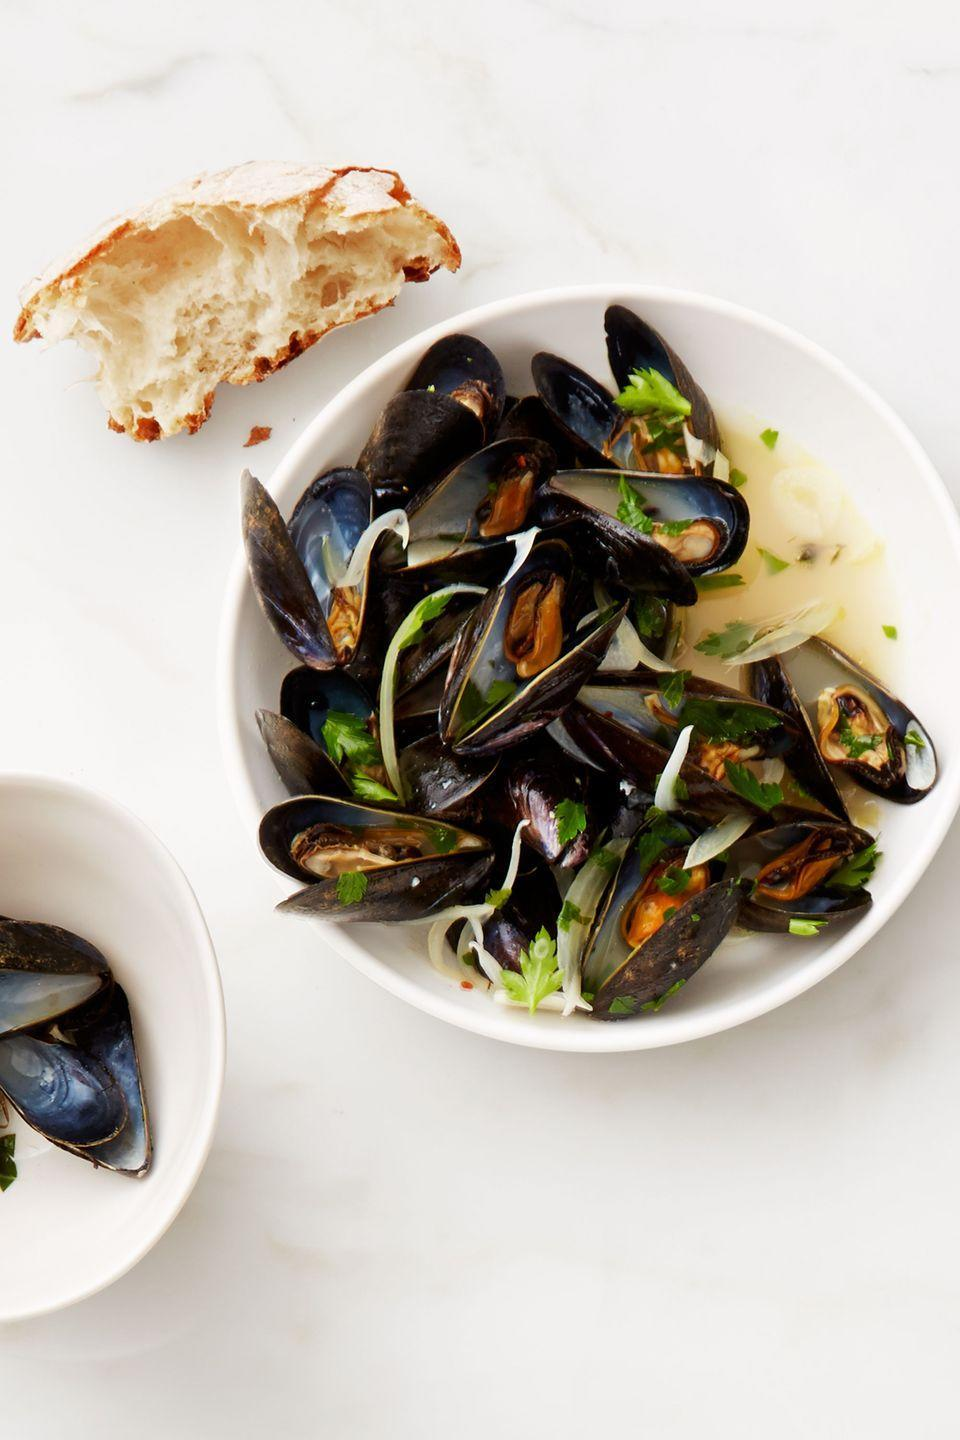 "<p>Now you can eat mussels whenever you want, not just in restaurants or on vacations. Plus, each serving clocks in at less than 200 calories. </p><p><a href=""https://www.womansday.com/food-recipes/food-drinks/recipes/a53285/white-wine-mussels/"" rel=""nofollow noopener"" target=""_blank"" data-ylk=""slk:Get the White Wine Mussels recipe."" class=""link rapid-noclick-resp""><em><strong>Get the White Wine Mussels recipe.</strong></em></a></p>"